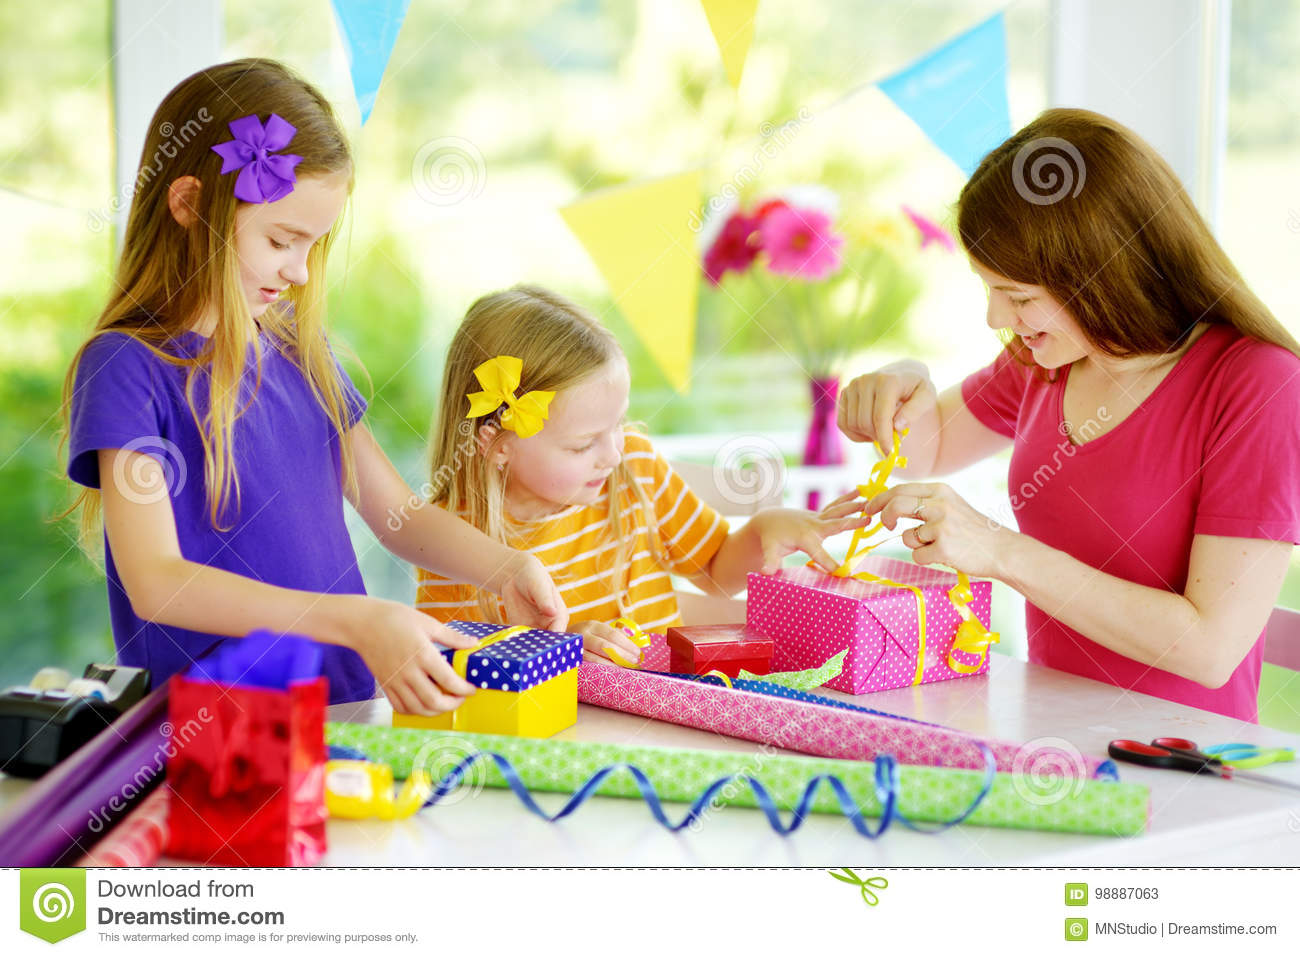 Two Cute Sisters And Their Young Mother Wrapping Gifts In Colorful Paper Family Of Three Birthday Presents Fun